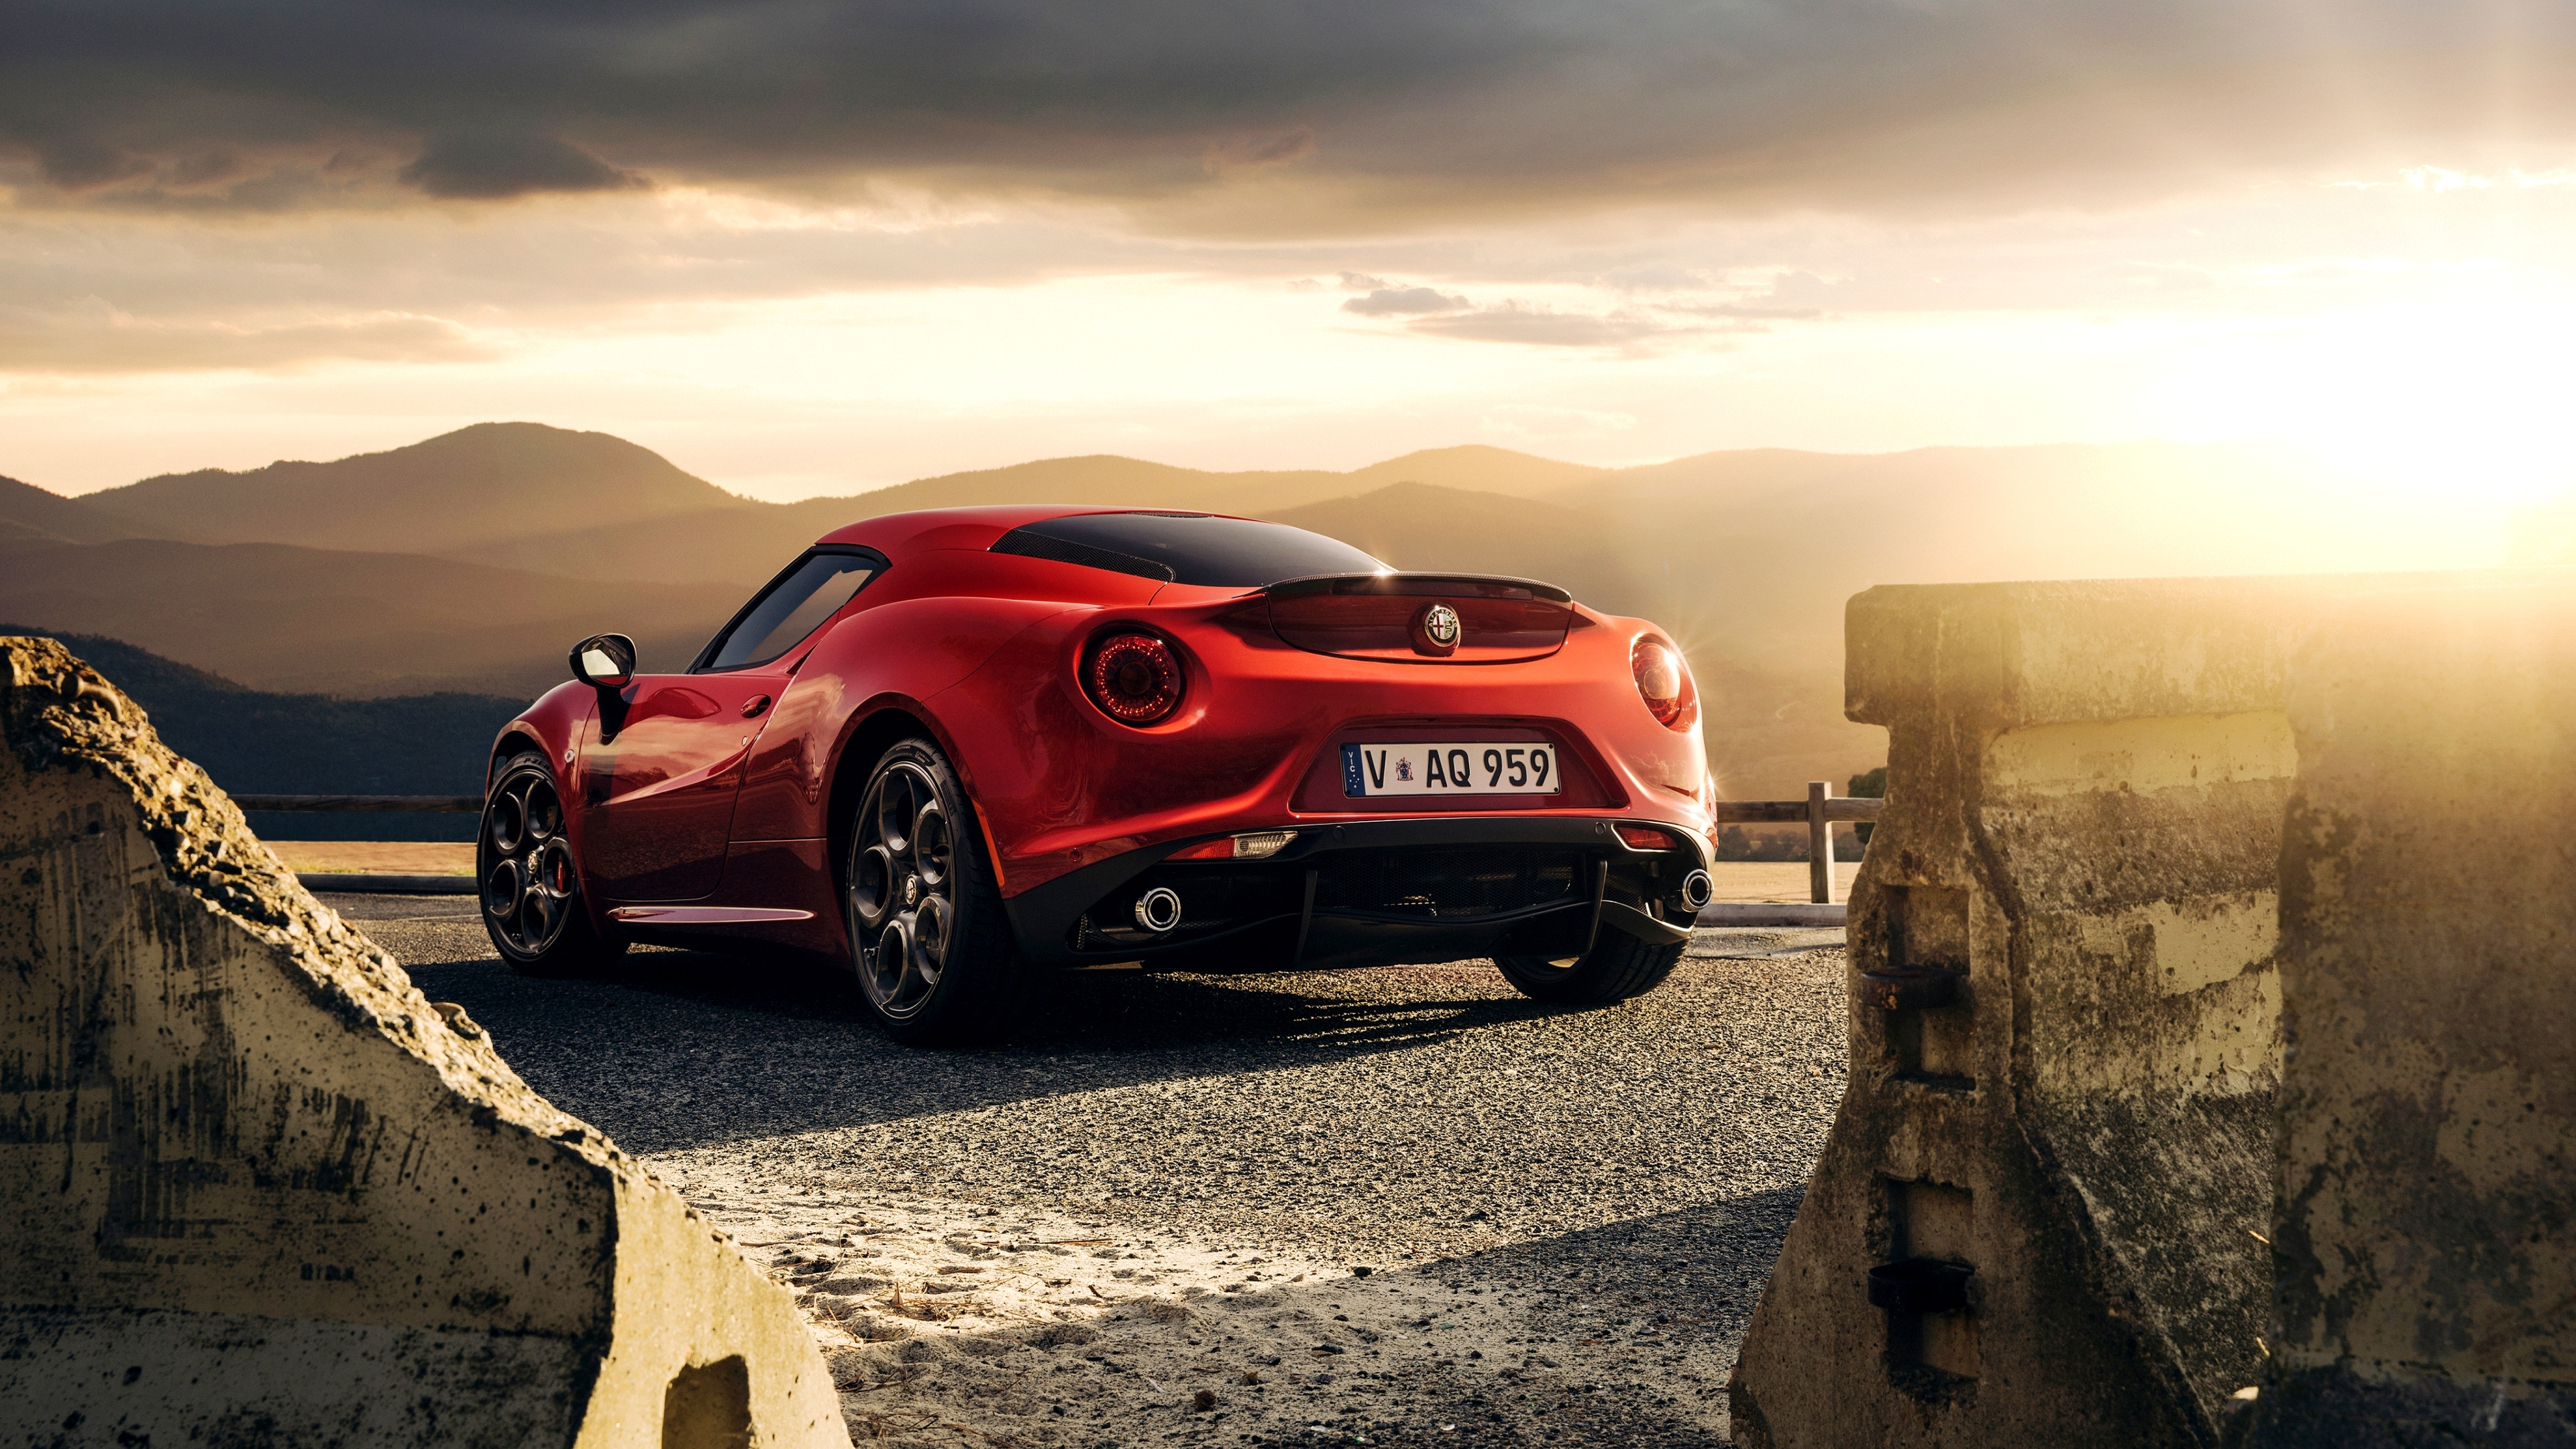 alfa romeo 4c launch edition 2015 wallpapers 3840x2160 2903003. Black Bedroom Furniture Sets. Home Design Ideas